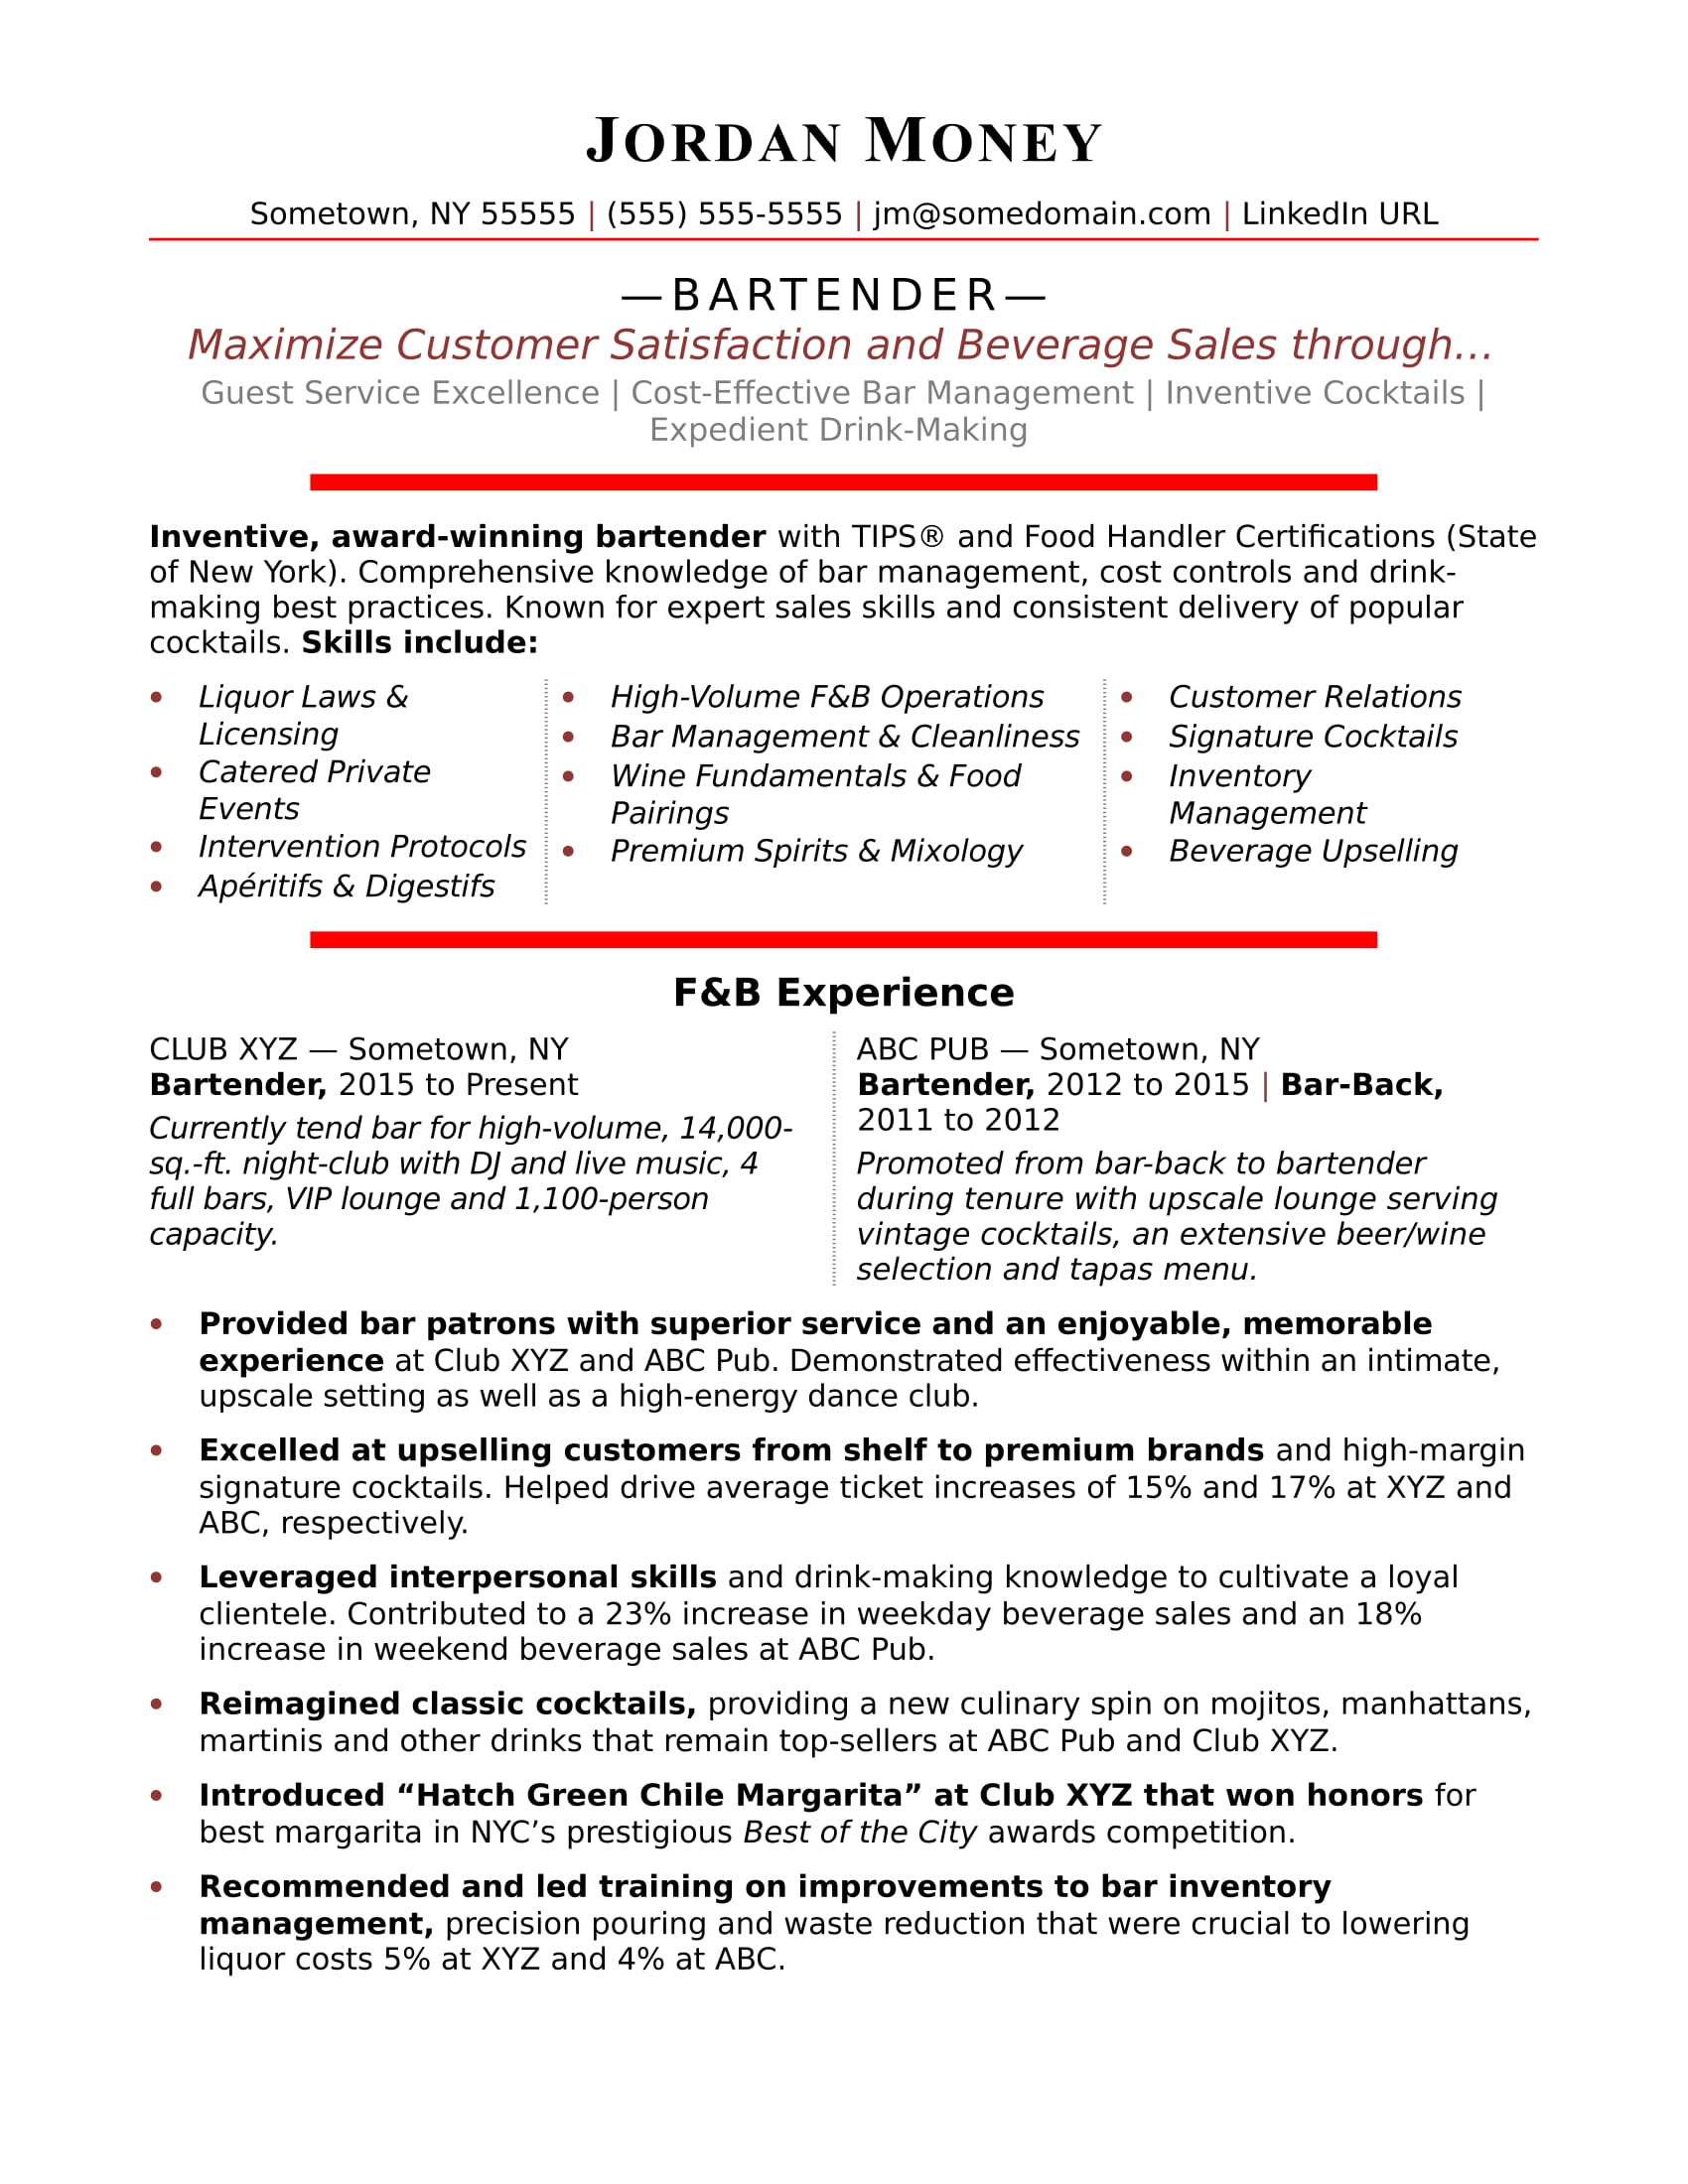 bartender resume education examples